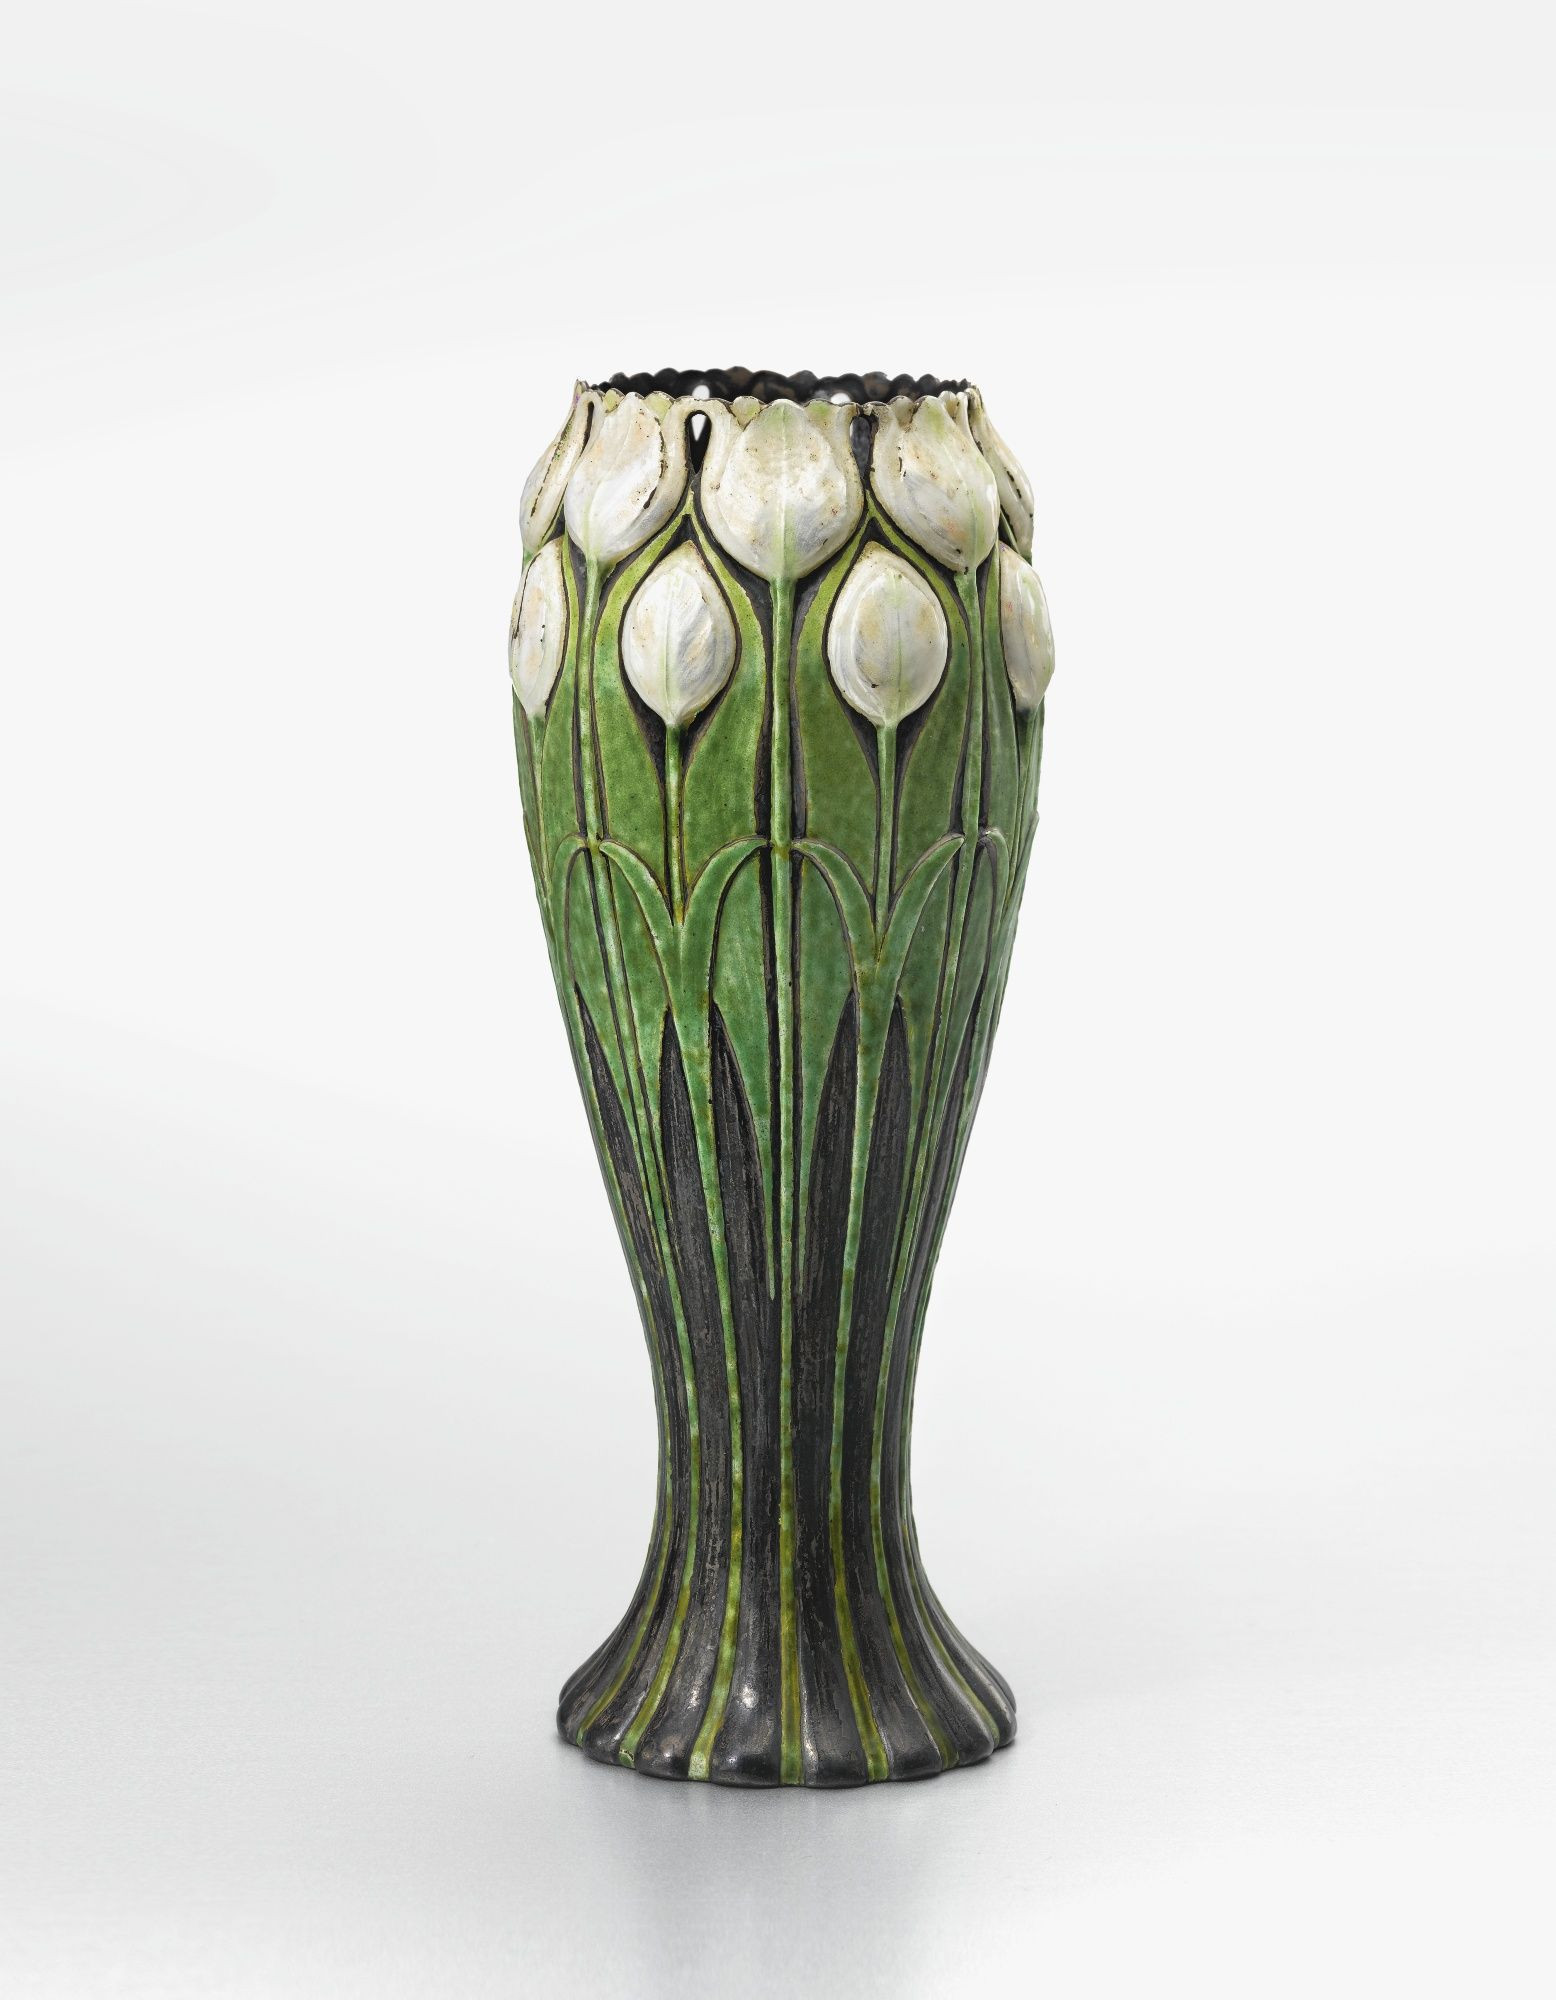 oriental vase markings of crystal vase prices images vases in kolkata west bengal vases inside crystal vase prices images tiffany co tulip vase impressed tiffany co makers